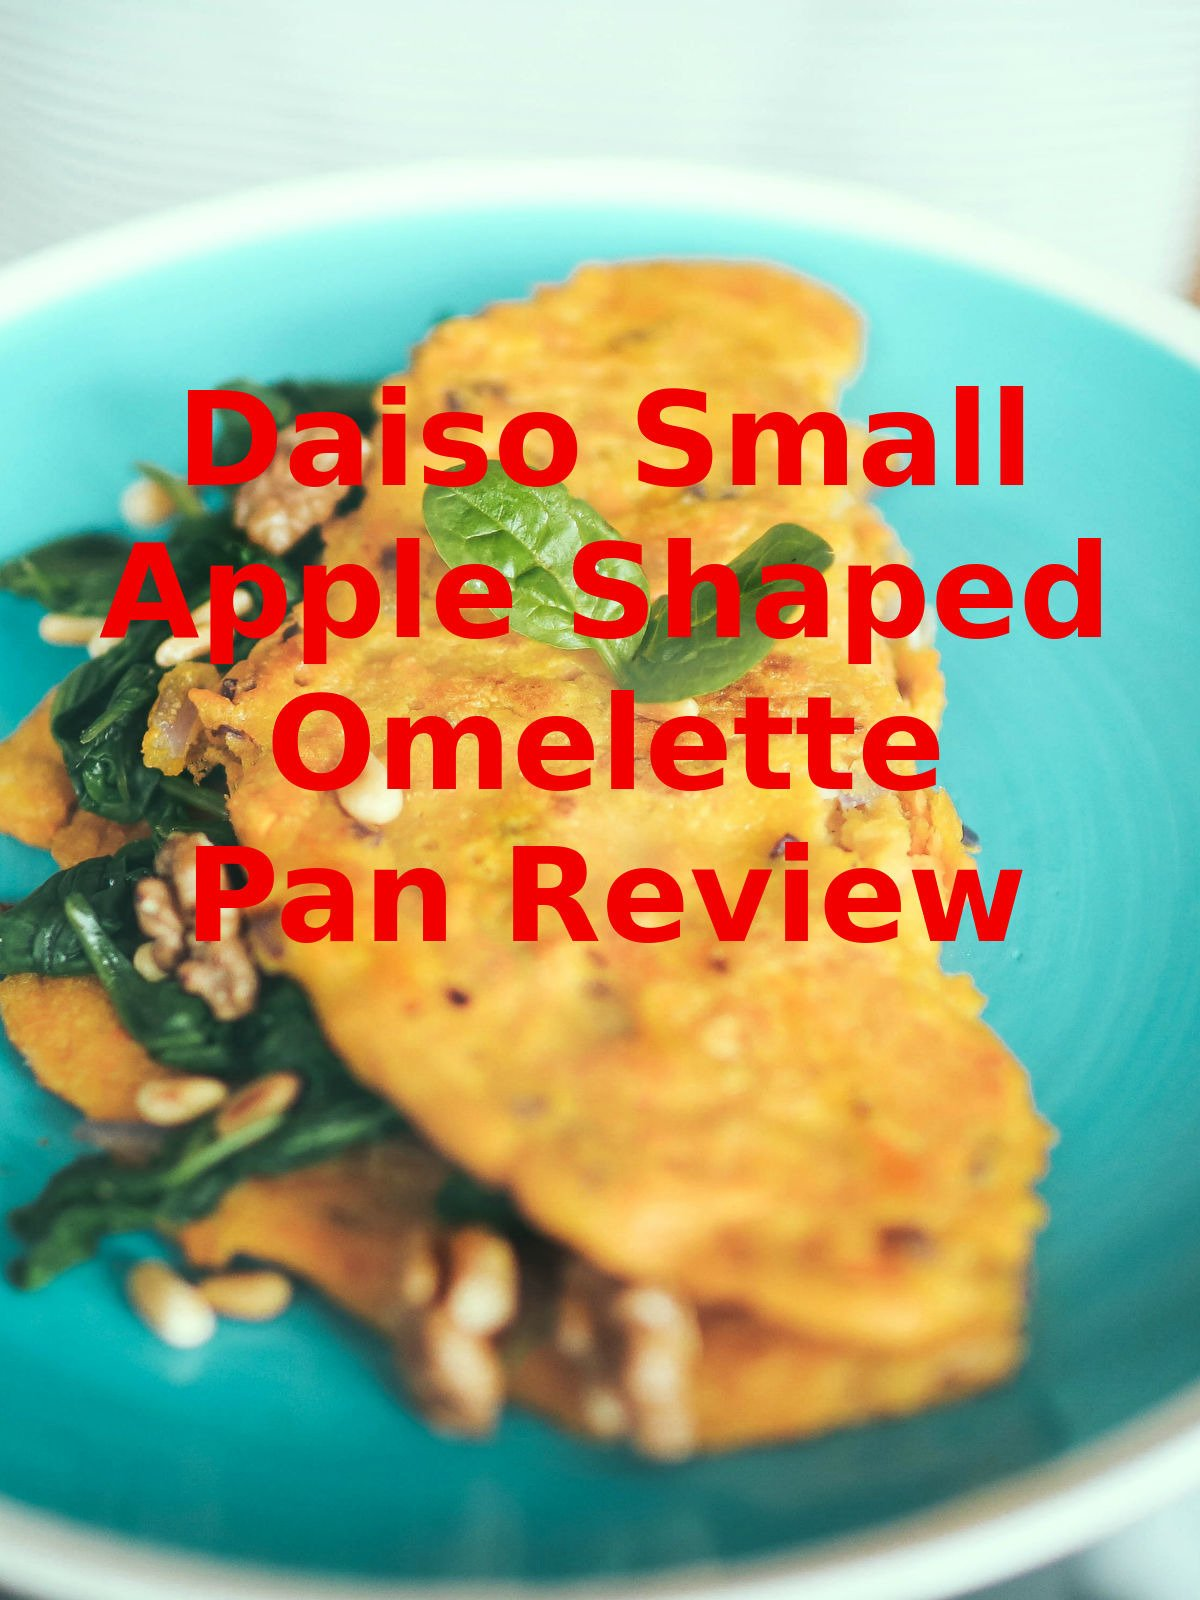 Review: Daiso Small Apple Shaped Omelette Pan Review